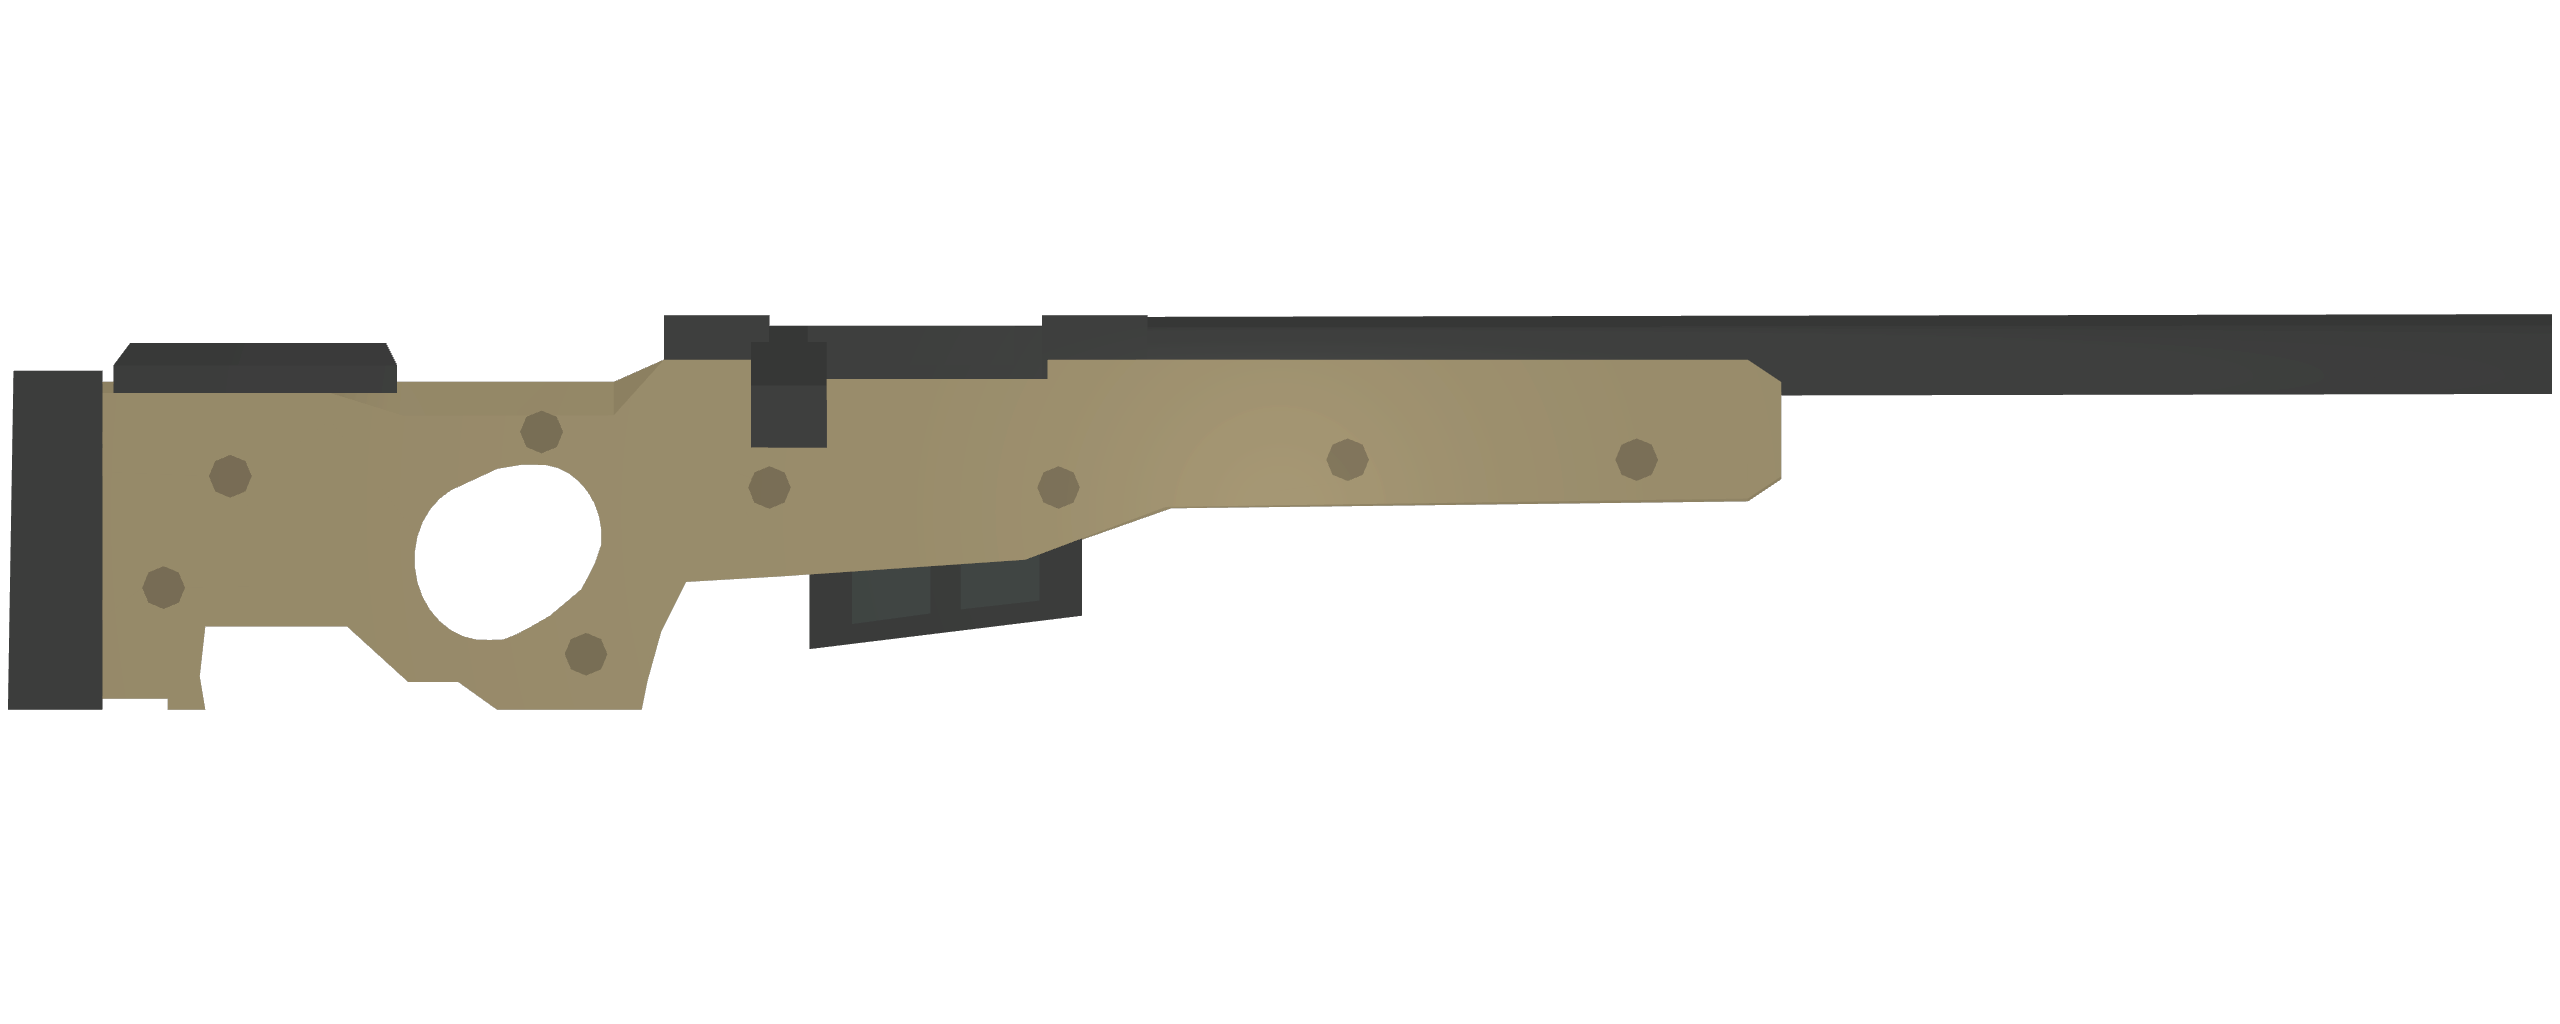 Unturned - All Weapons ID's for Uncreated Warfare Mods - Neutral Weapons - DBC5286